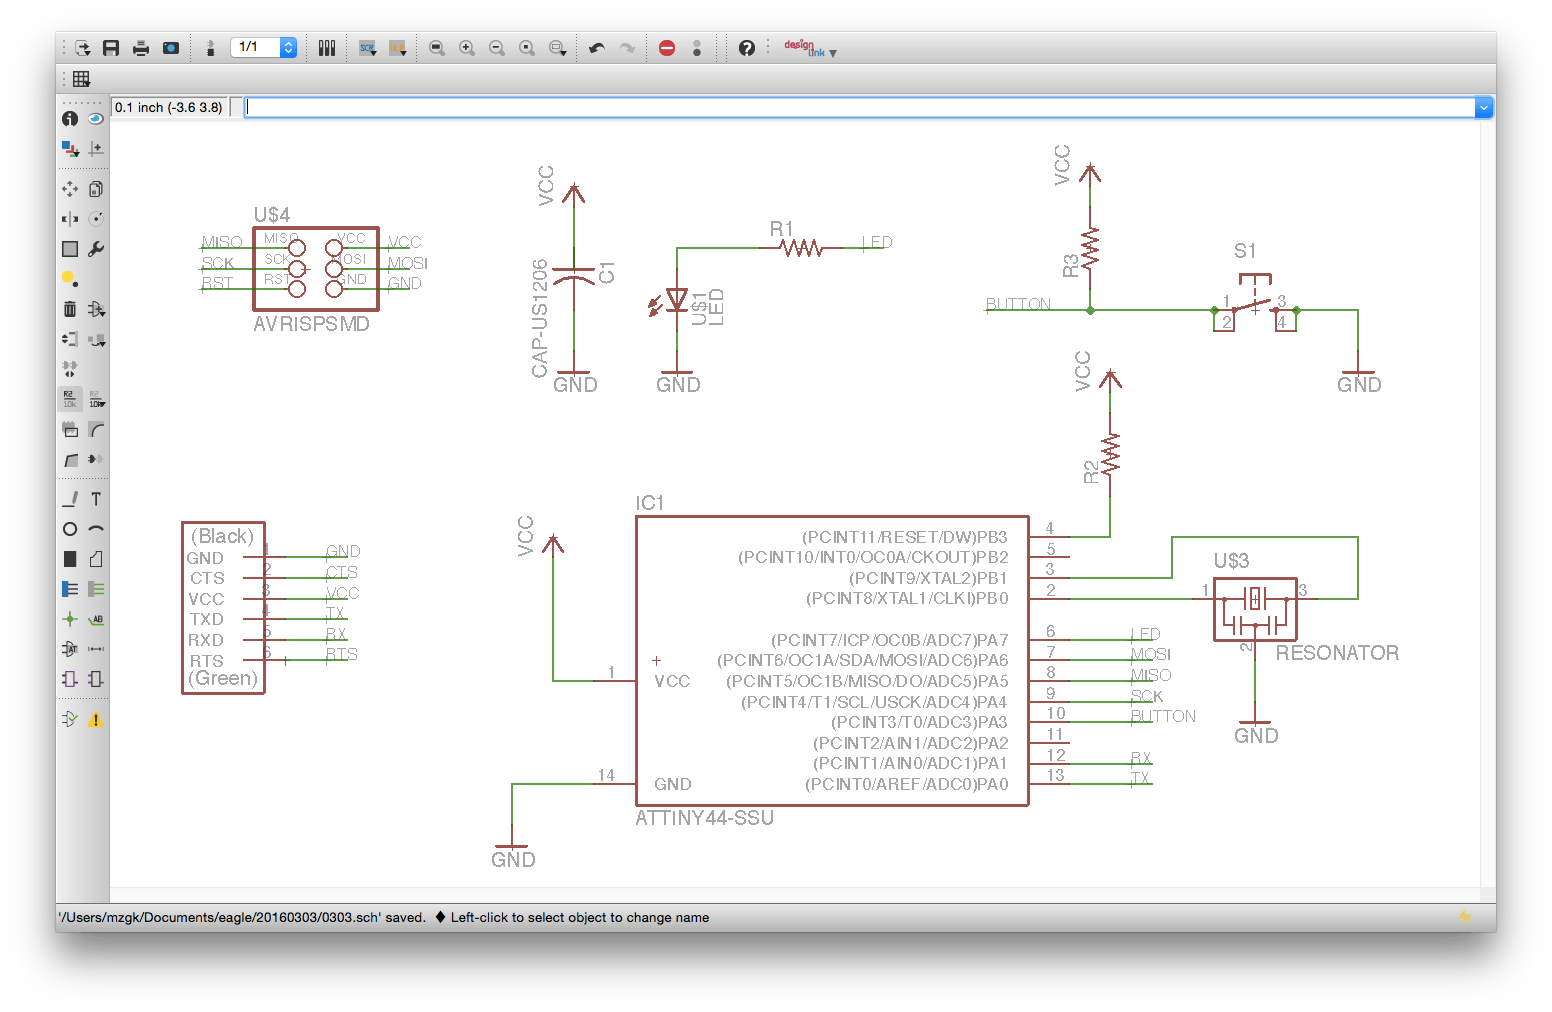 Fab Academy 2016 Report Shunichi Mizugaki Here Are The Eagle Designs For Circuit Board First We Install Which Is Open Source Software Designing Using Drew Schematic Of Echo Hello World As Below